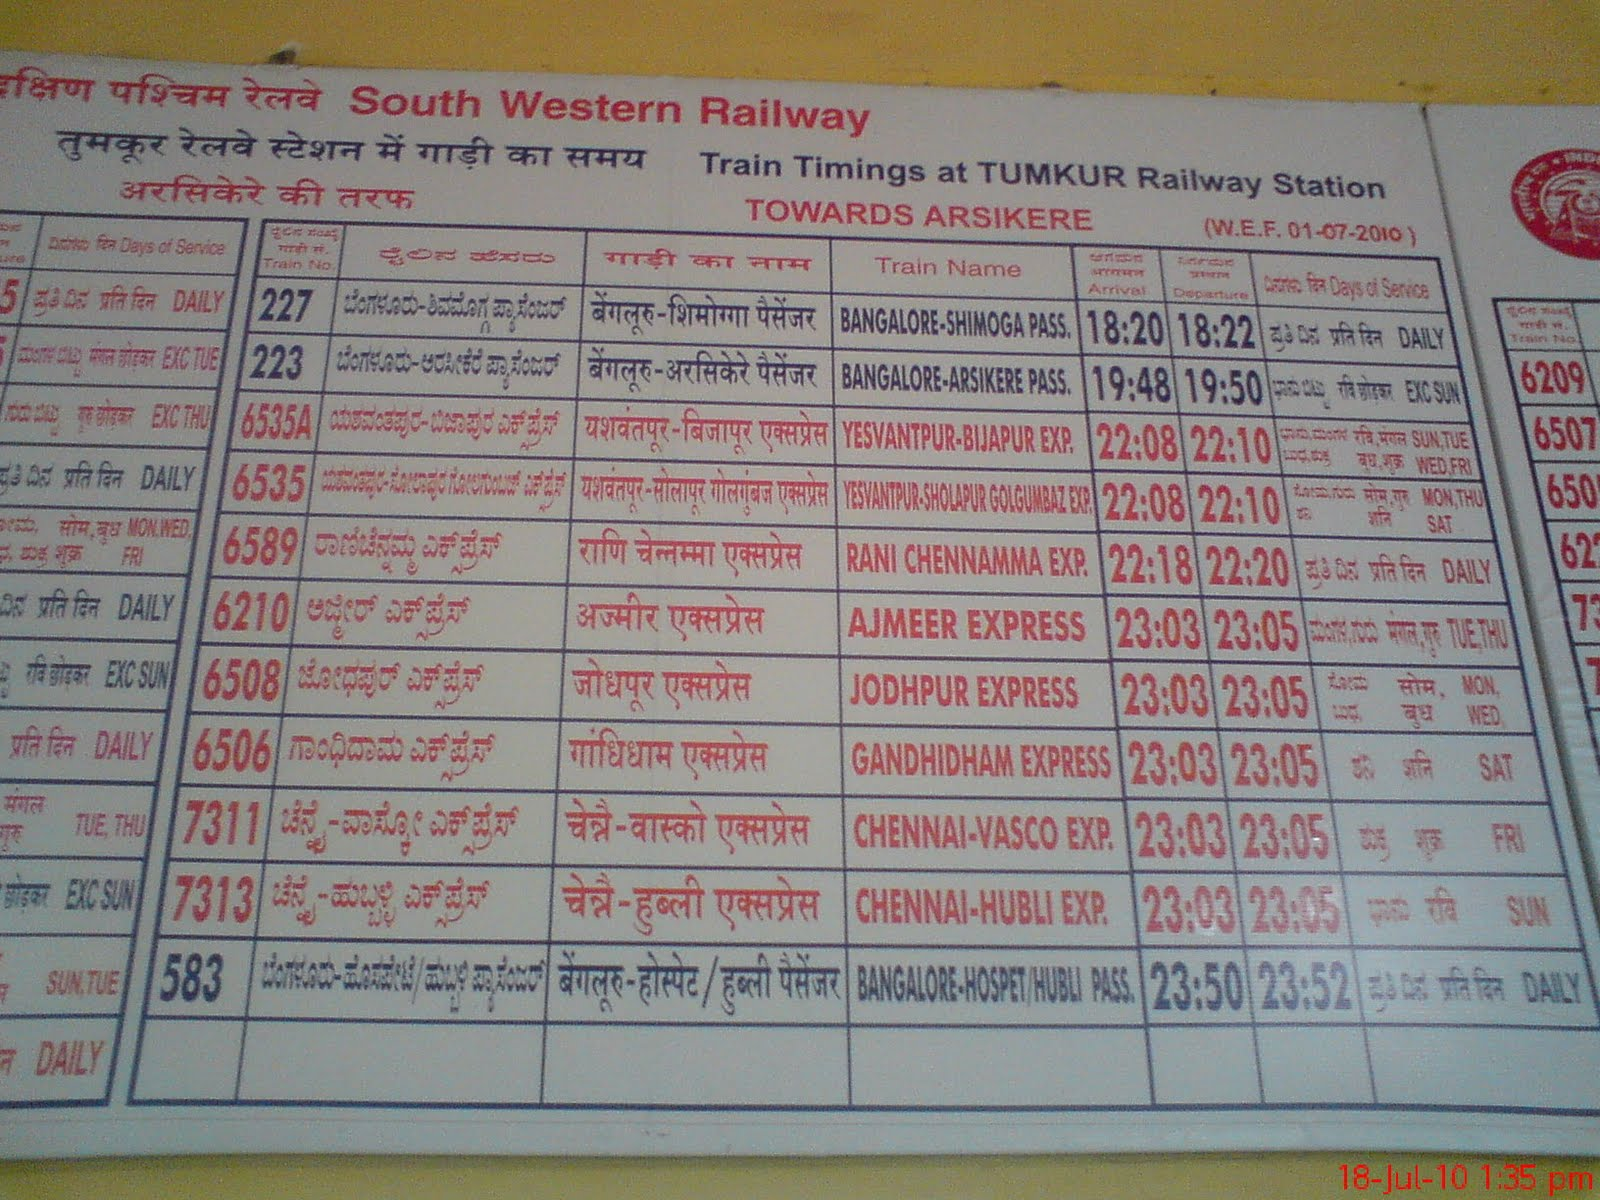 train enquiry number